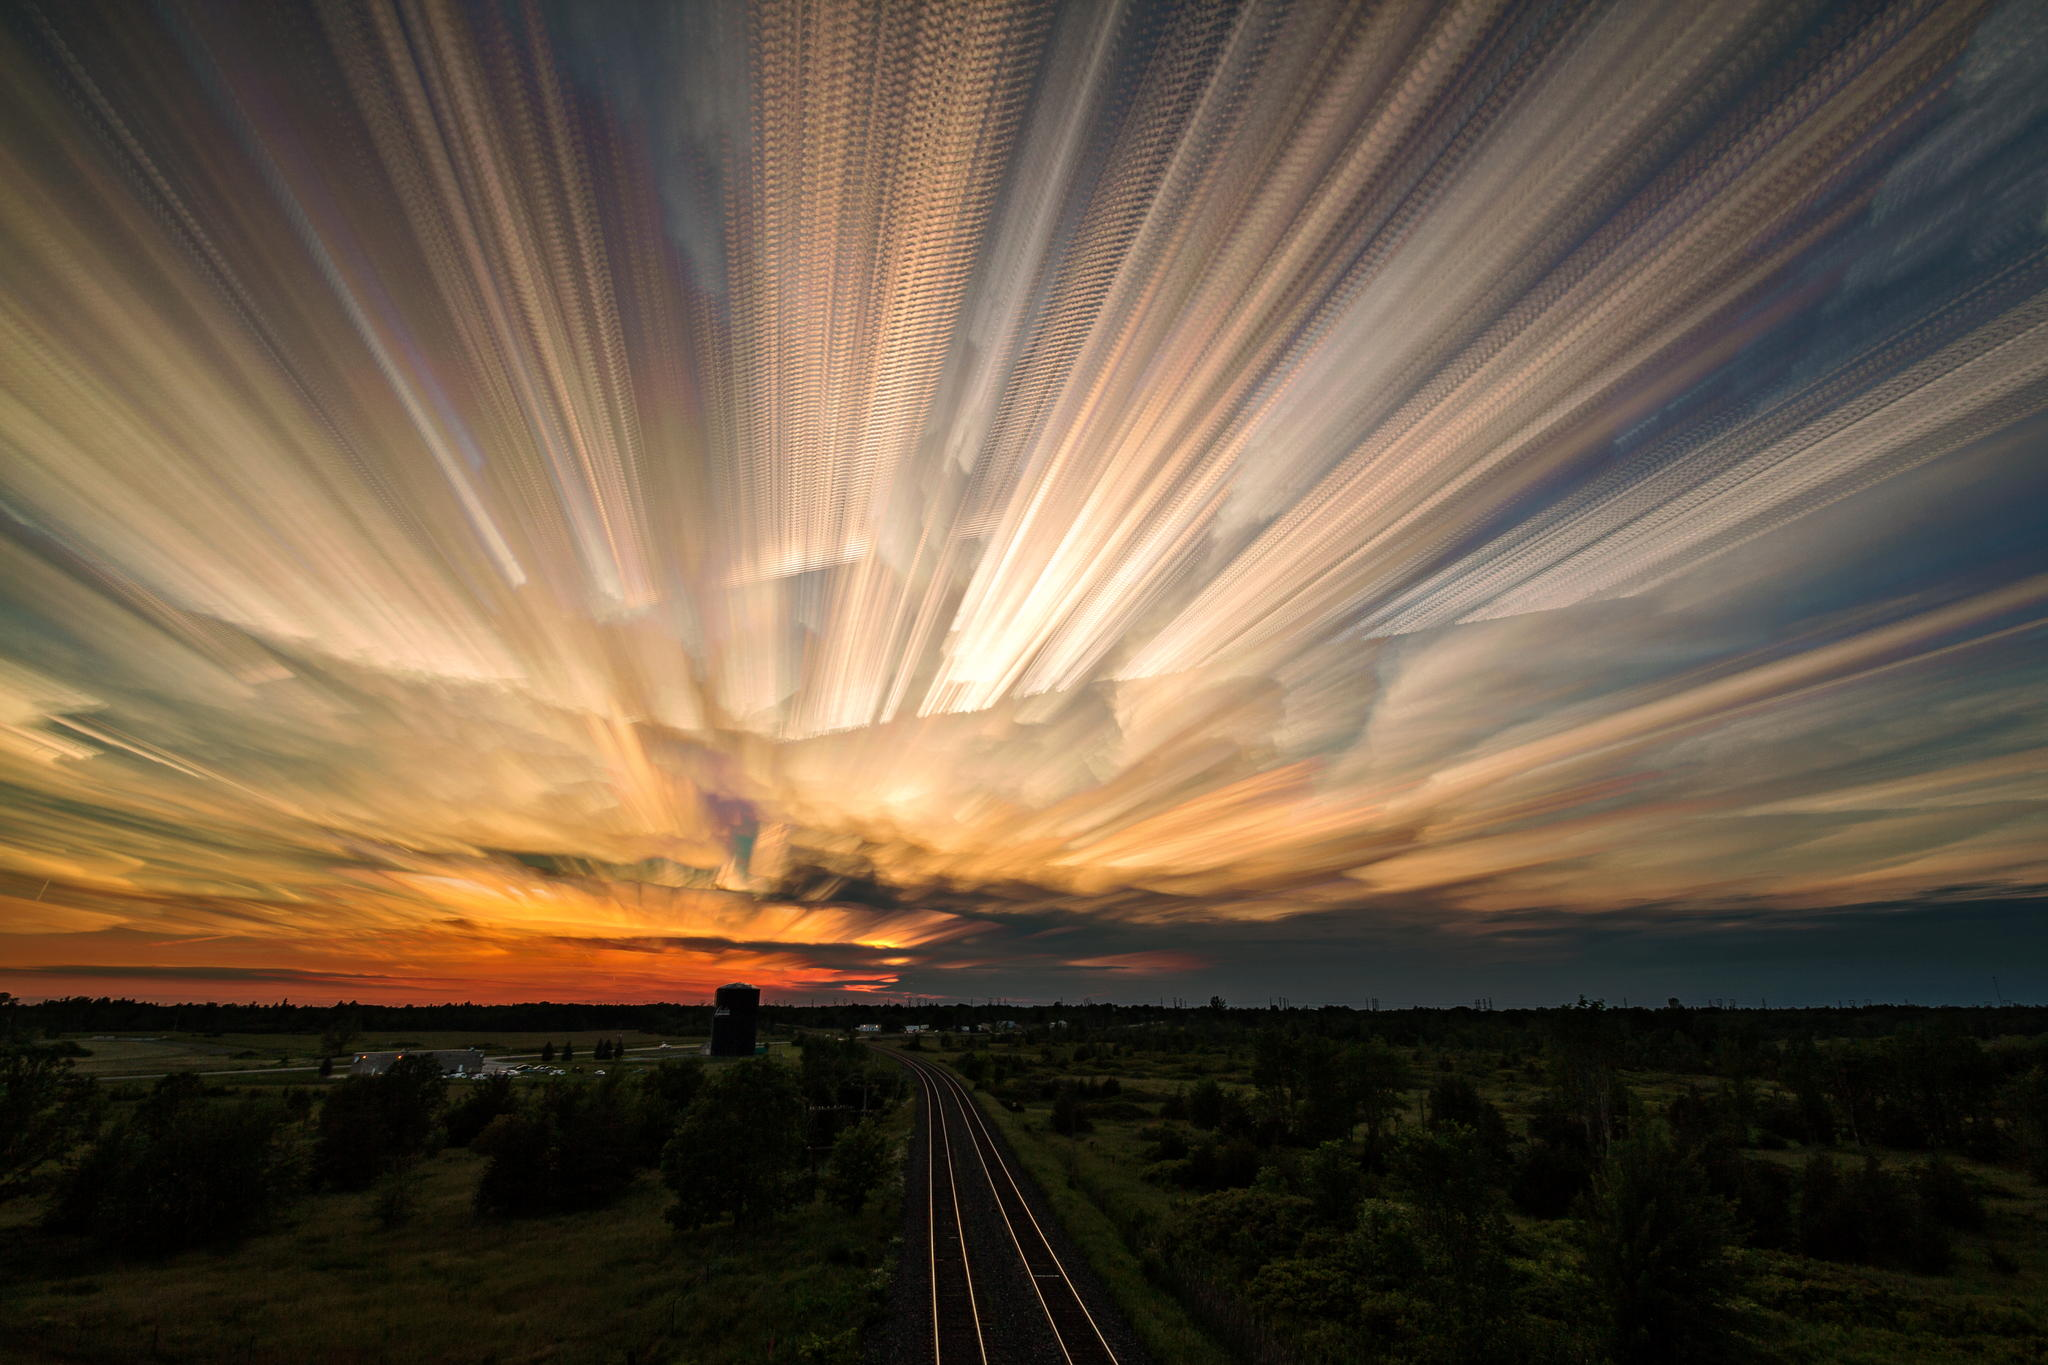 Photograph All Paths Lead to Ra by Matt Molloy on 500px